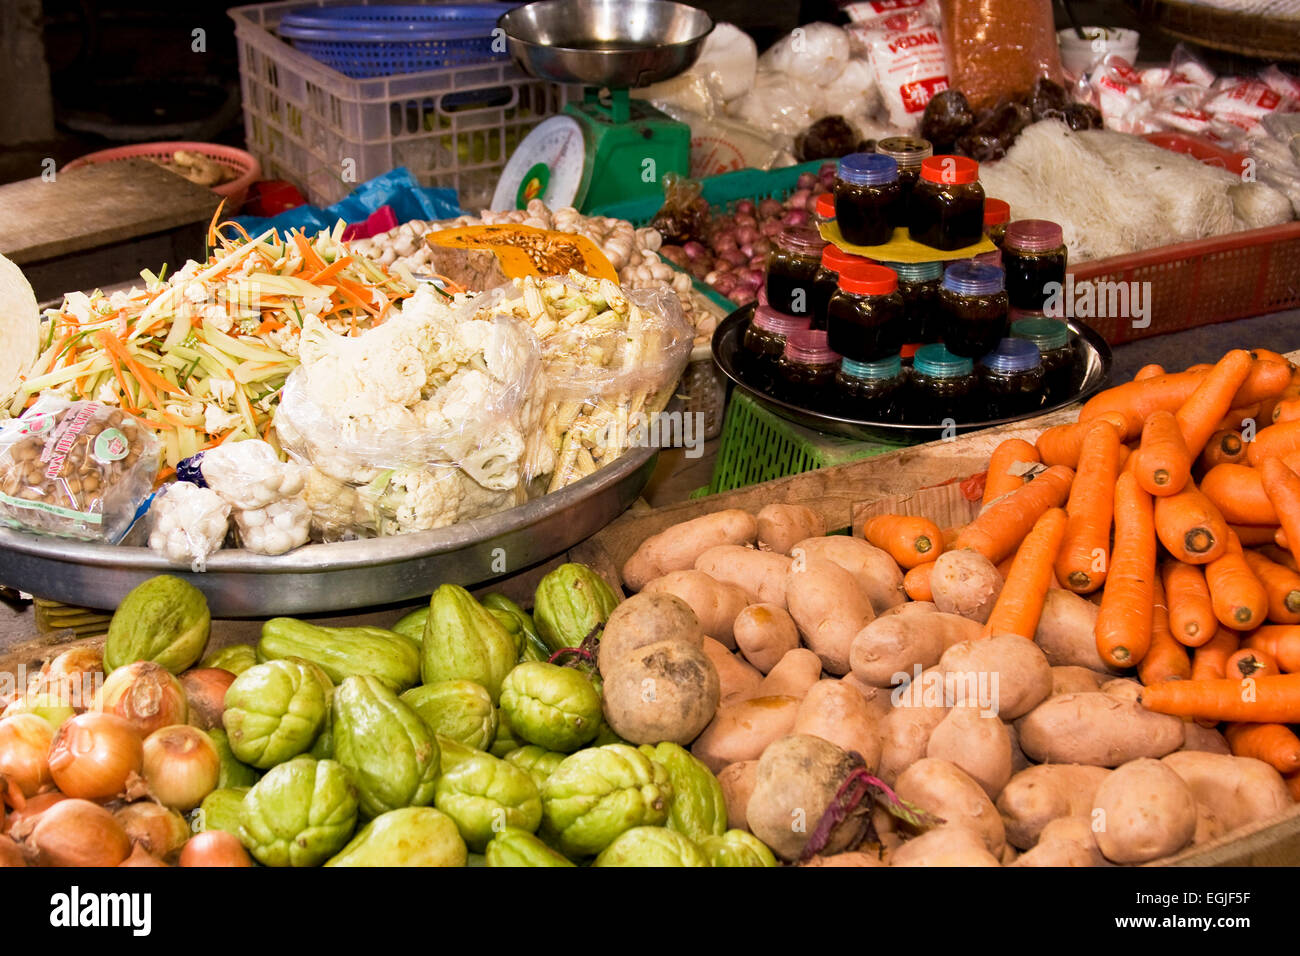 Selling vegetables at a market in at Toi on the island of Phu Quoc, Vietnam, Southeast Asia - Stock Image